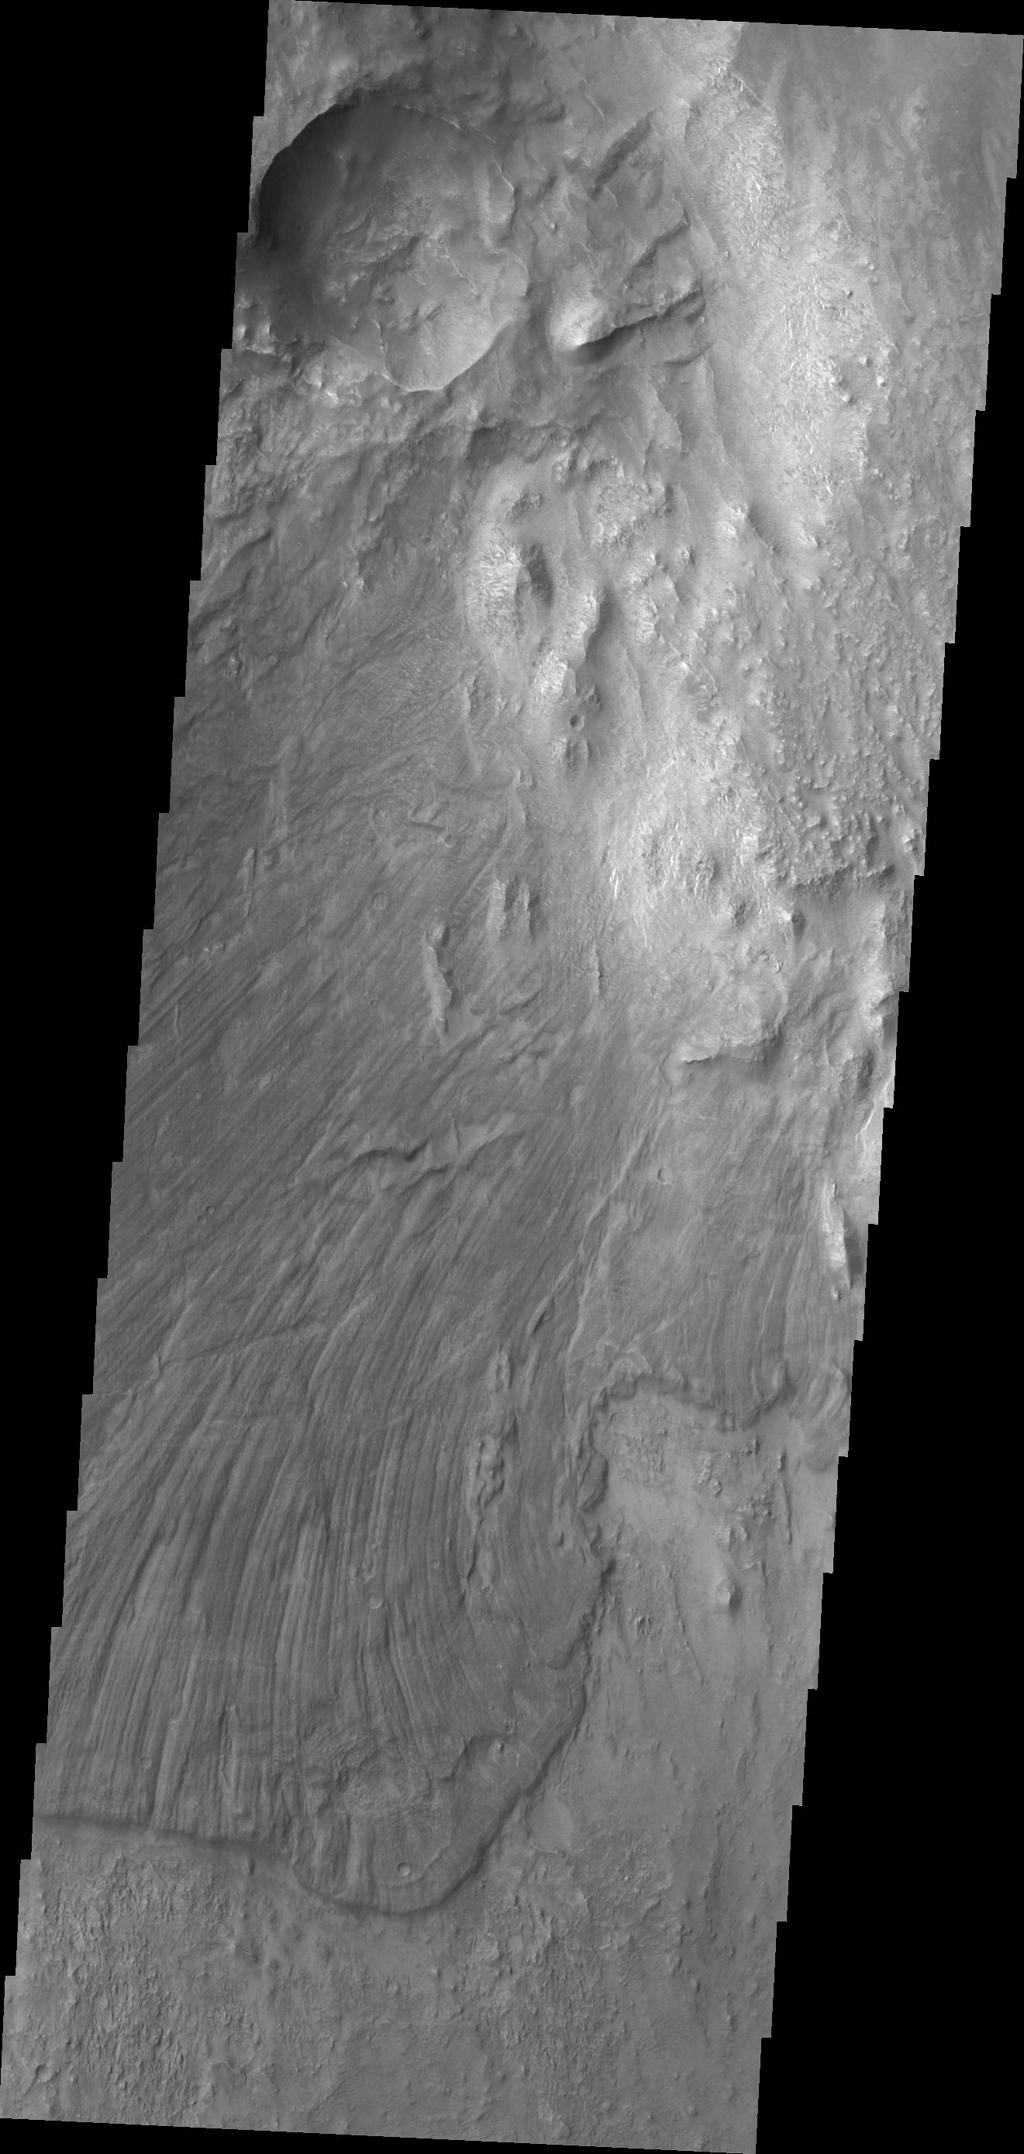 A large landslide located in Candor Chasma is seen by NASA's 2001 Mars Odyssey spacecraft.